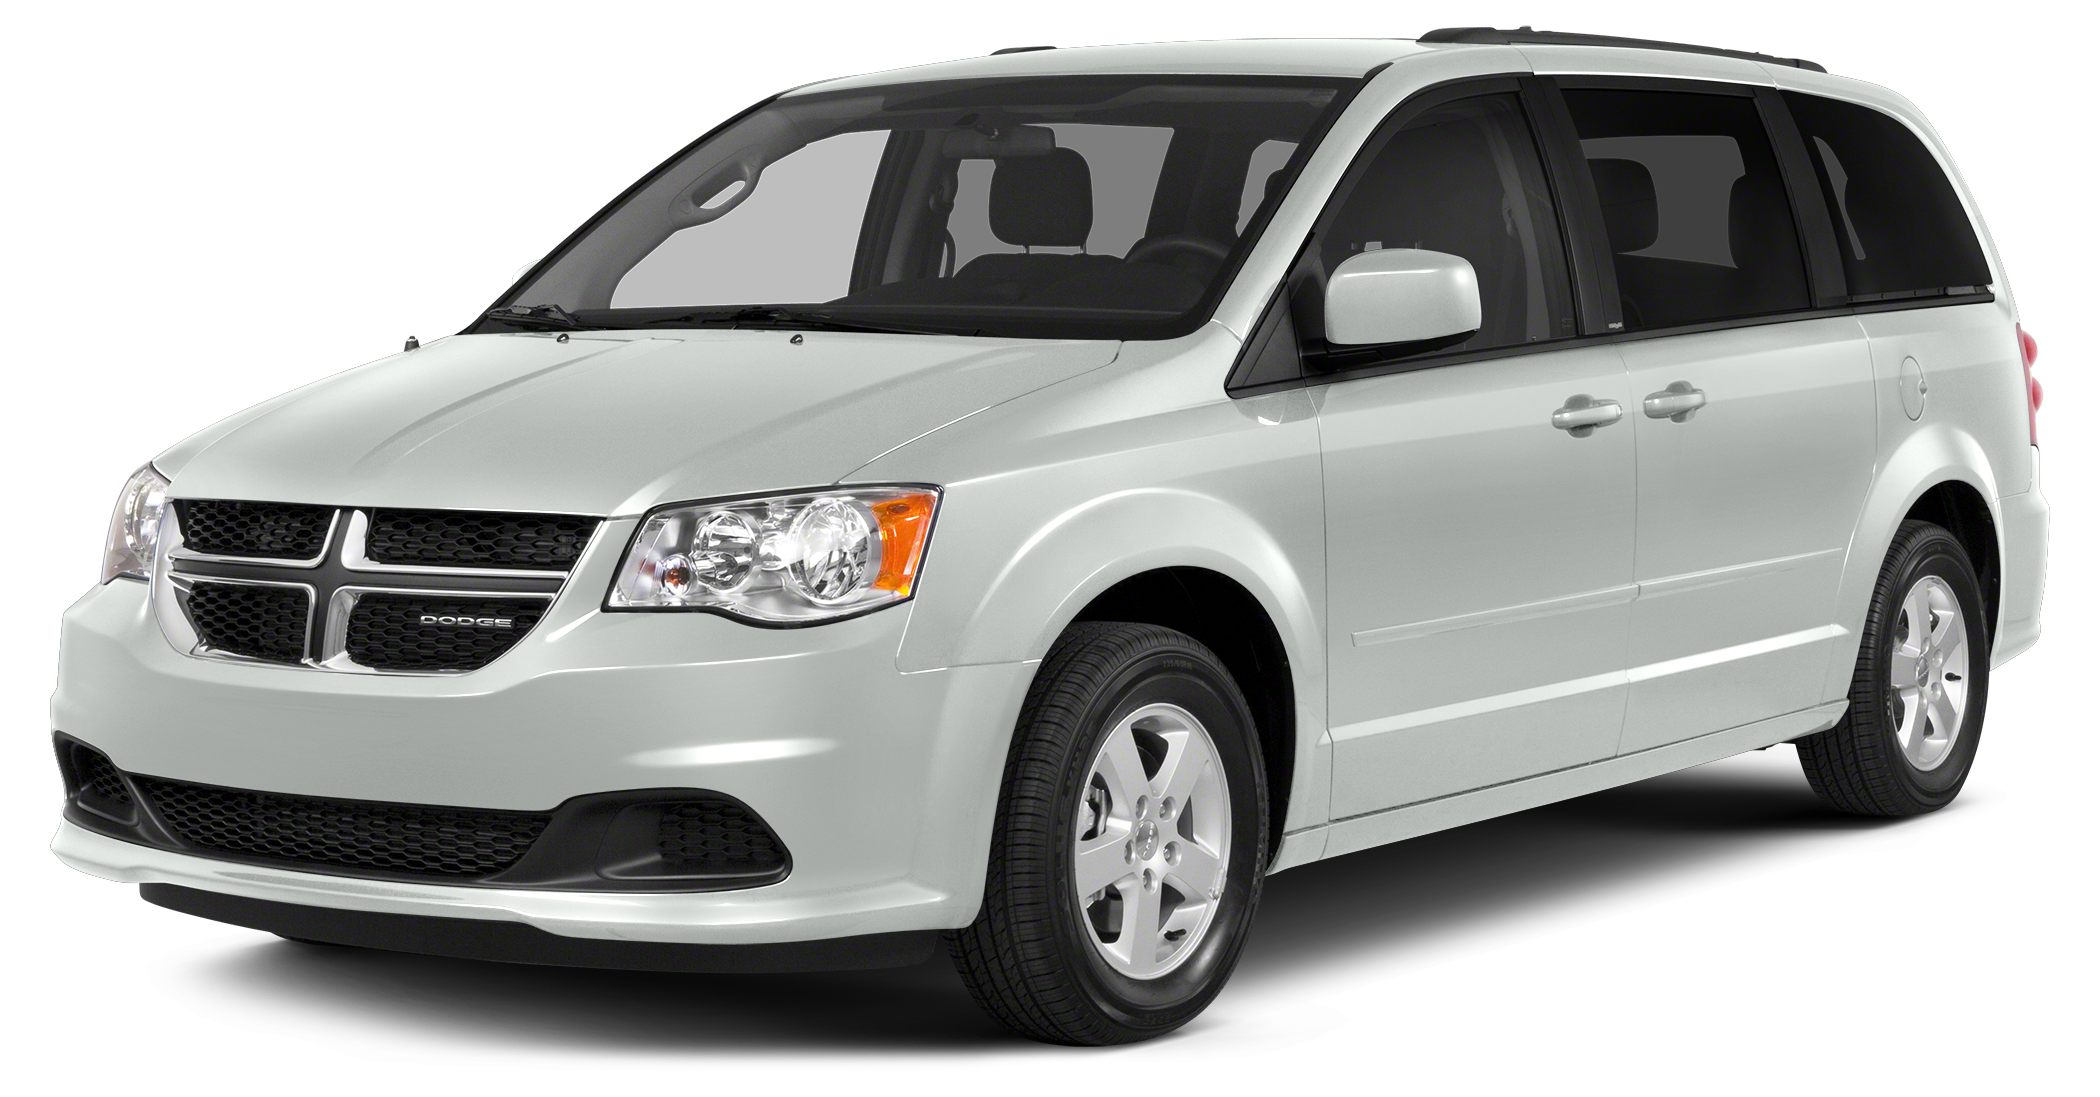 2014 Dodge Grand Caravan AVPSE Miles 44006Color White Stock U2396 VIN 2C4RDGBG1ER319788